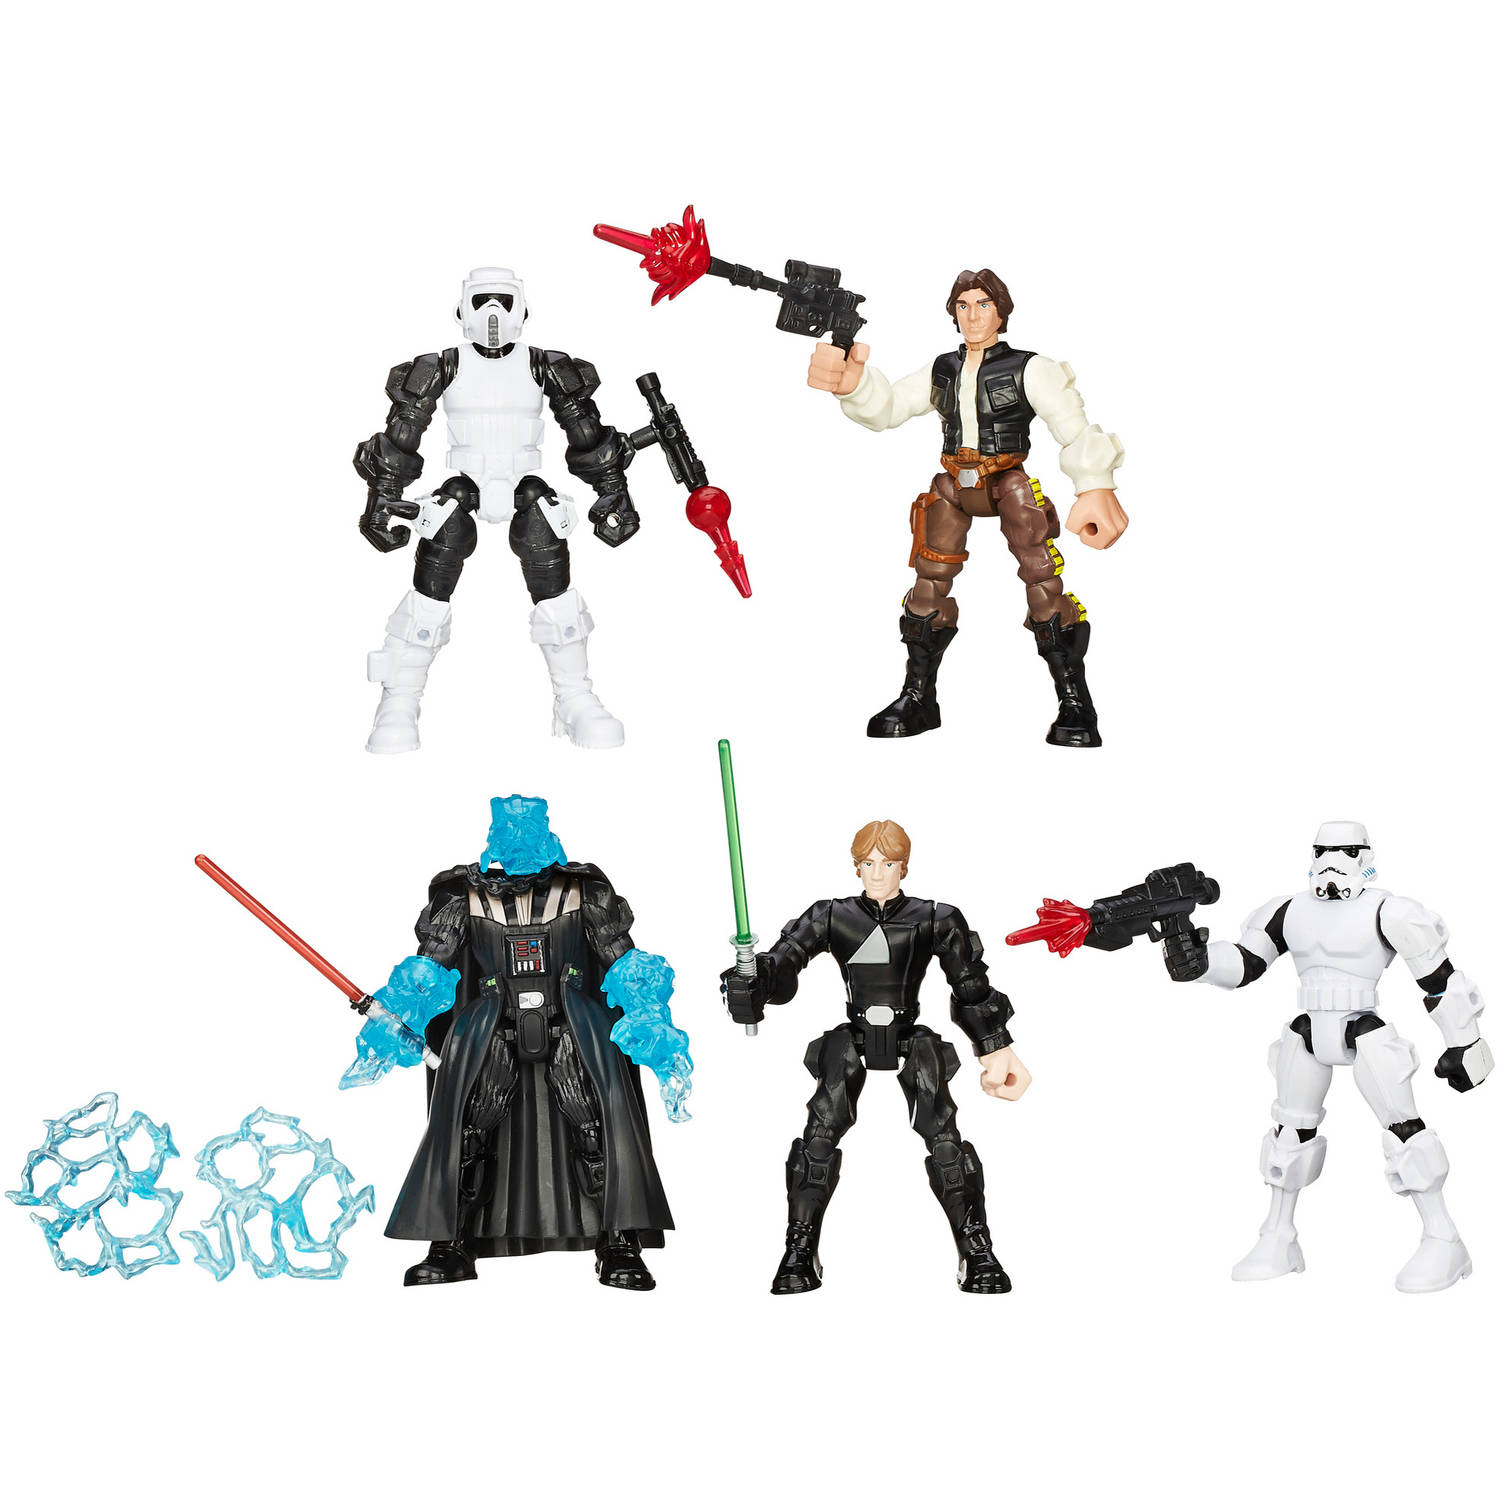 Star Wars Hero Mashers Return of the Jedi Multipack by Entertainment Earth Distribution